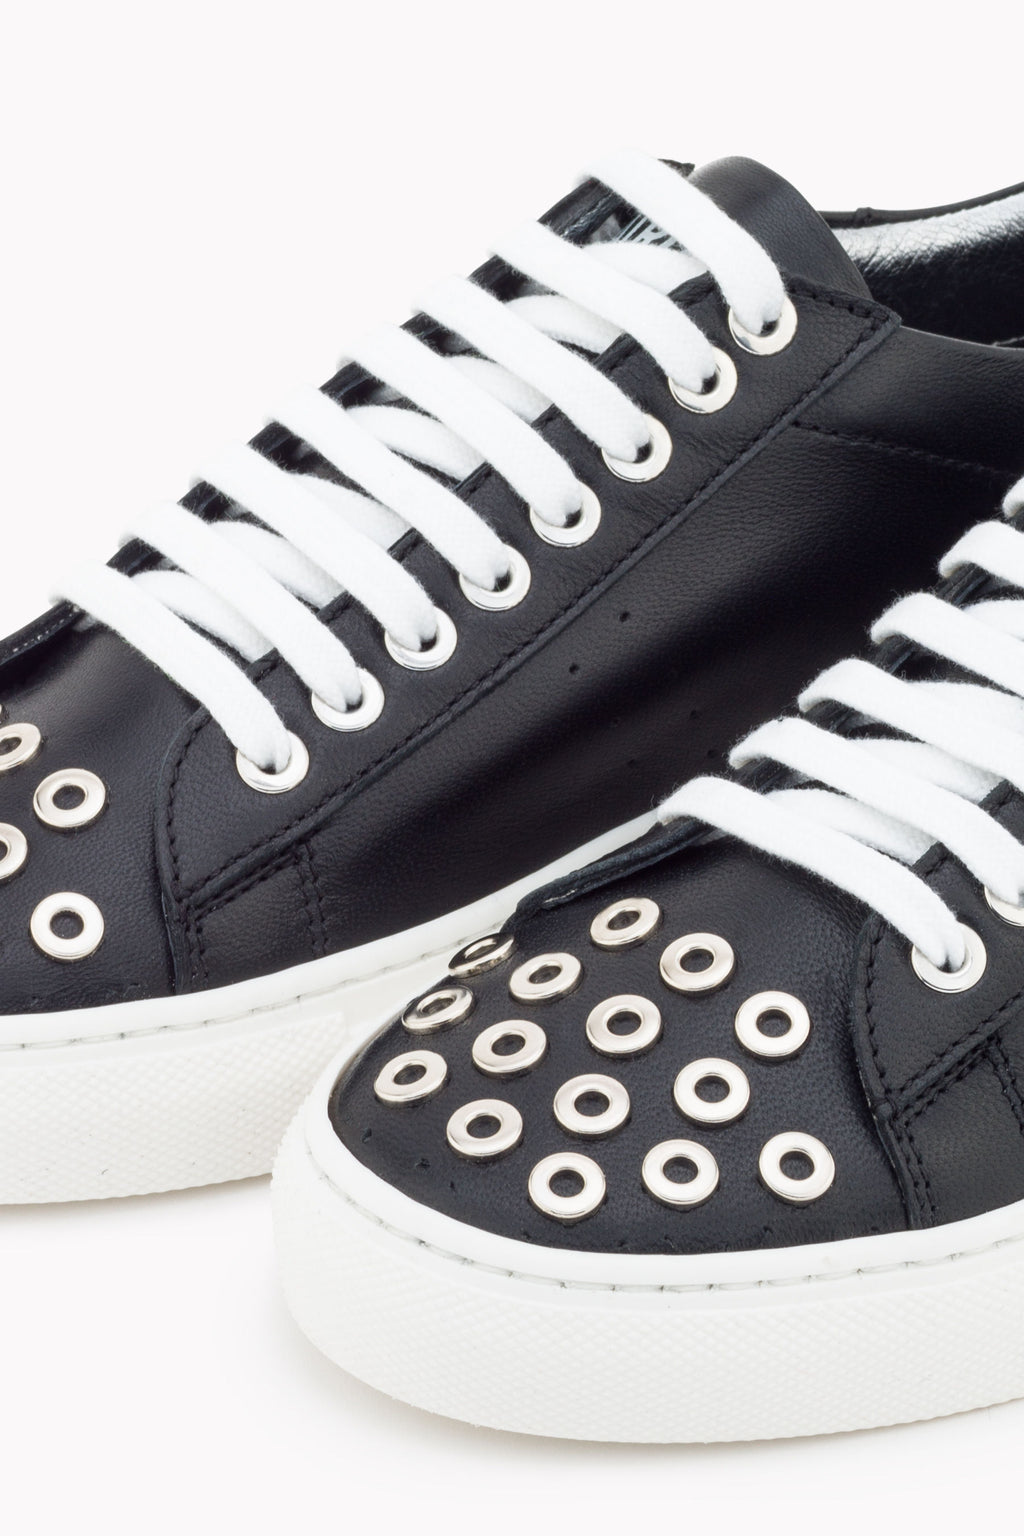 Patrizia Pepe 2V9875 Rivet Studded Fly Trainers Black & White